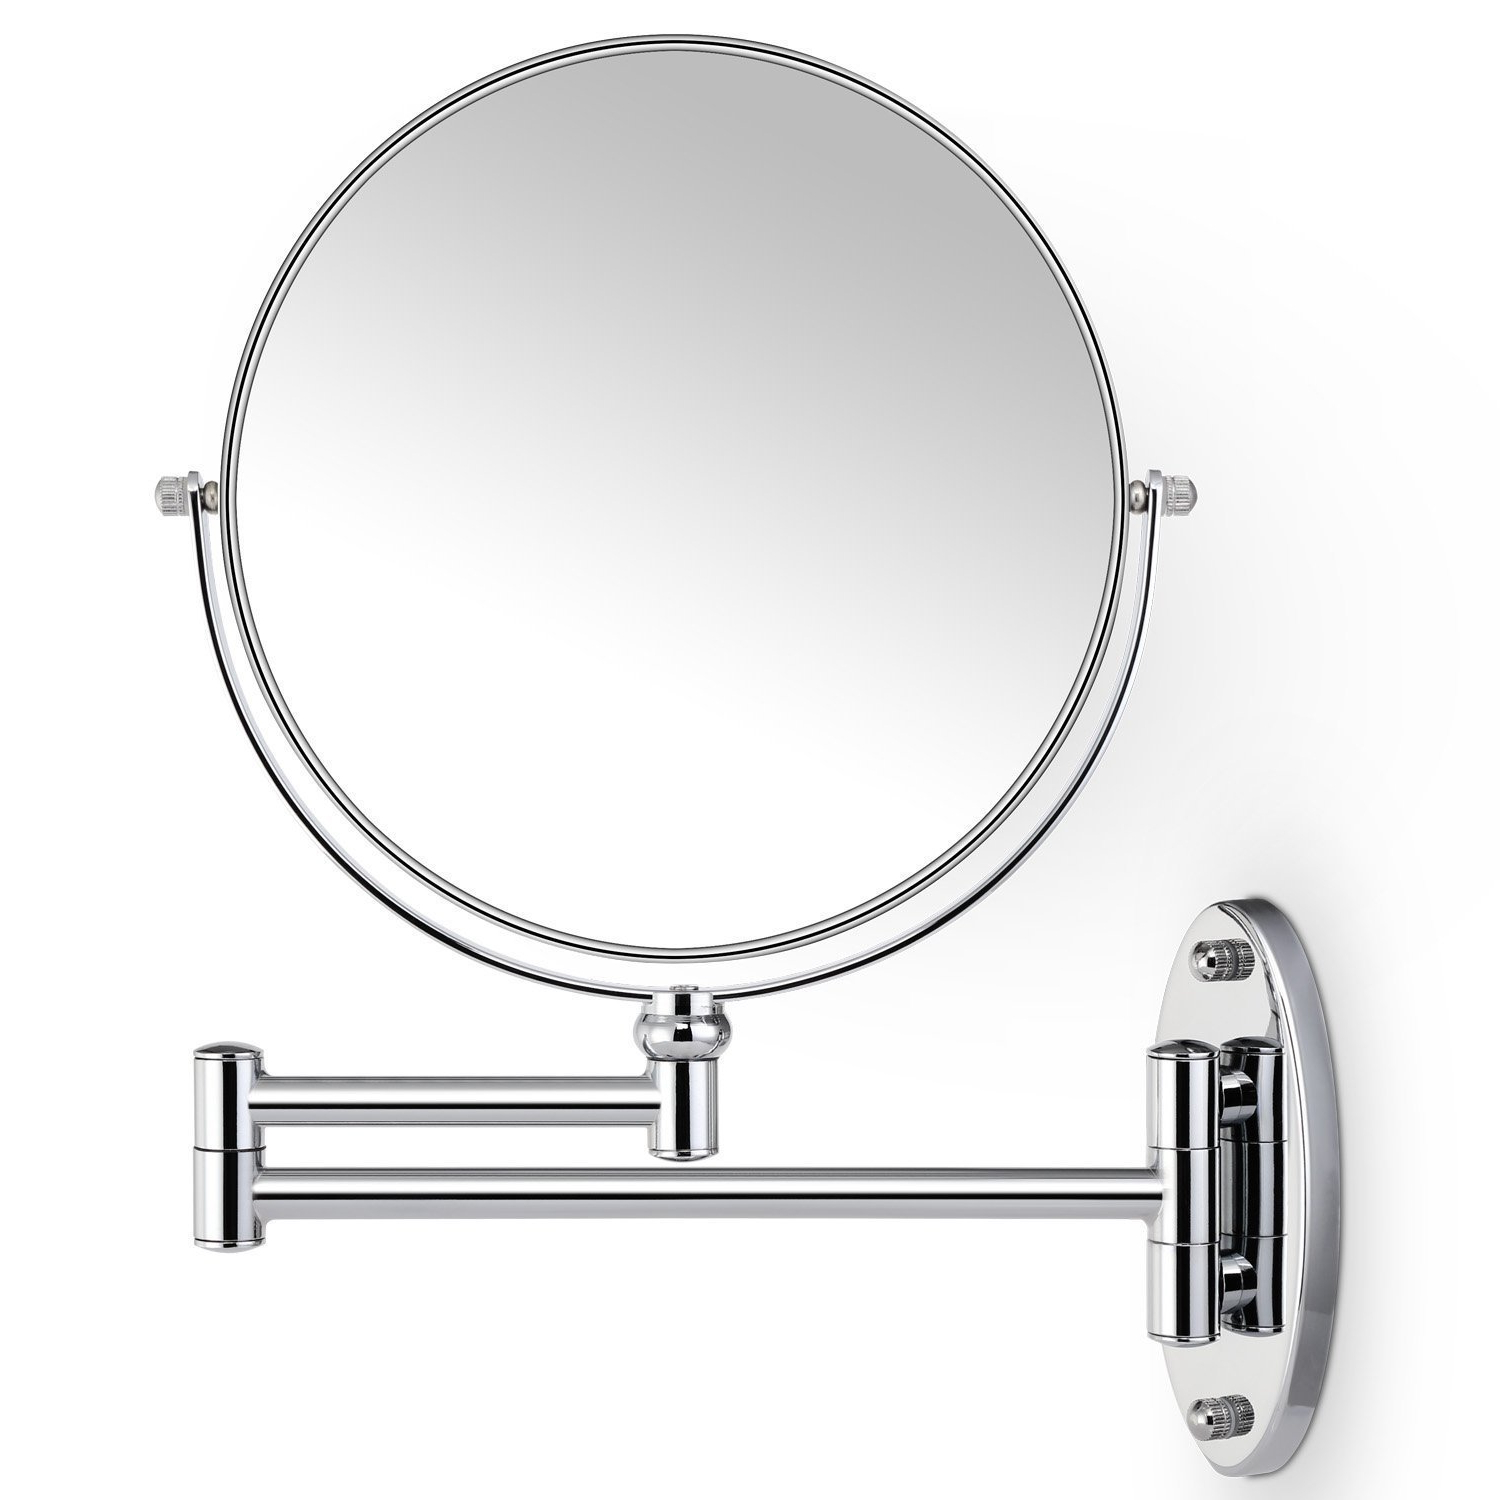 Cosprof Bathroom Mirror 10x/1x Magnification Double Sided 8 Inch Wall Mounted Vanity Magnifying Mirror Pertaining To Widely Used Magnifying Wall Mirrors For Bathroom (View 2 of 20)